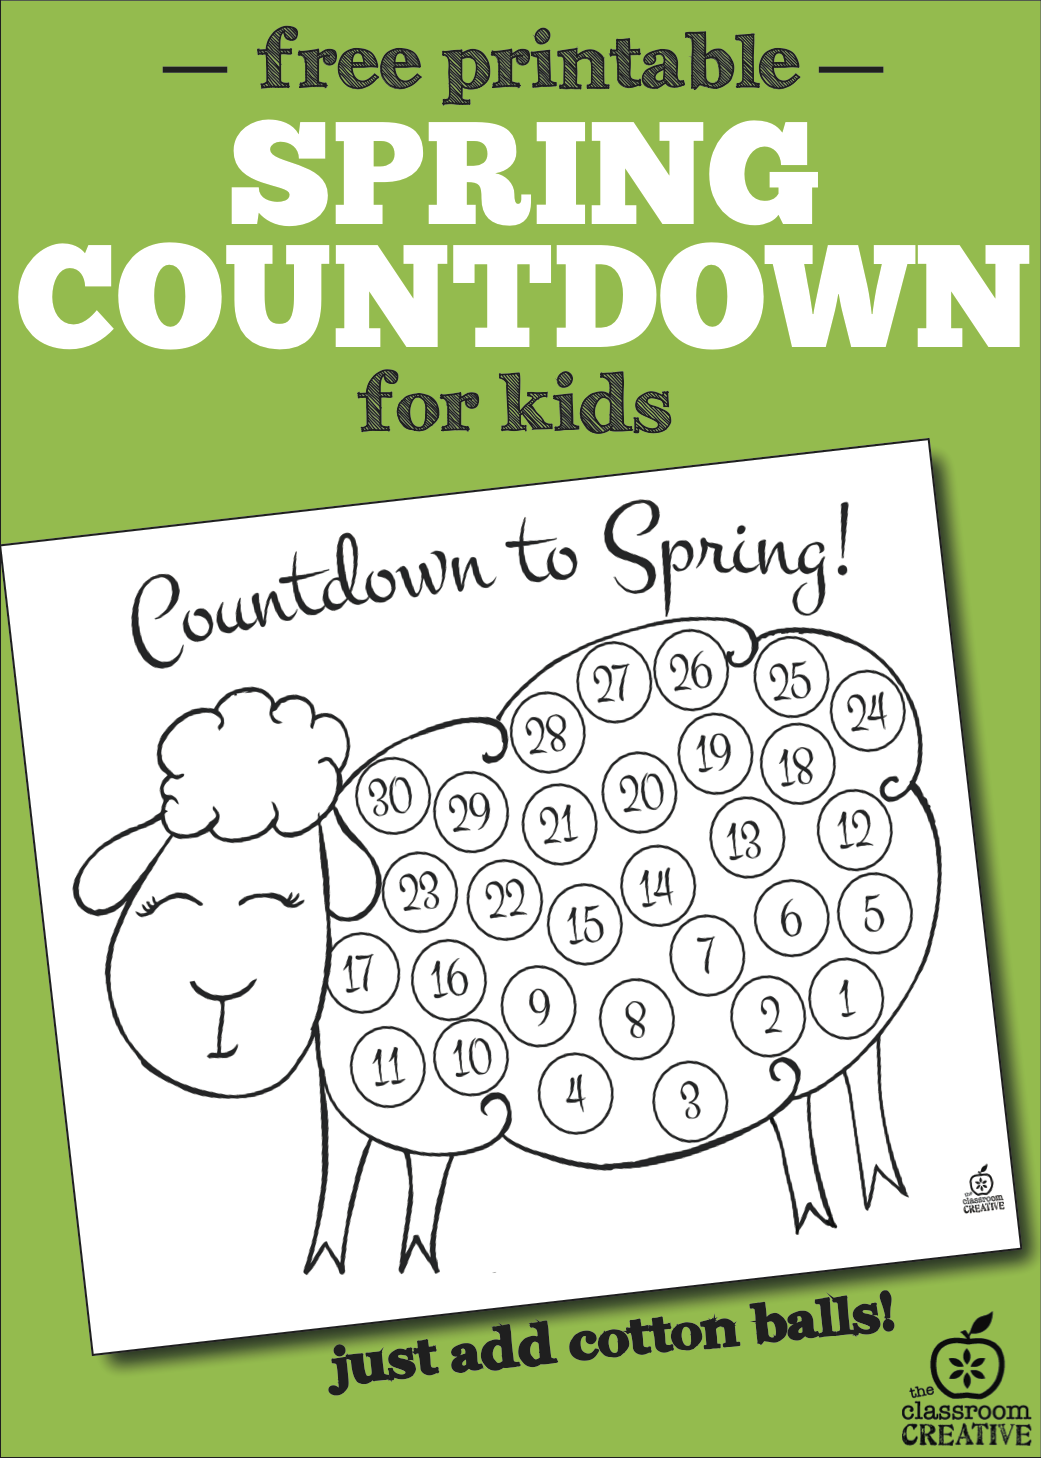 Spring Countdown Craft for Kids (free printable)